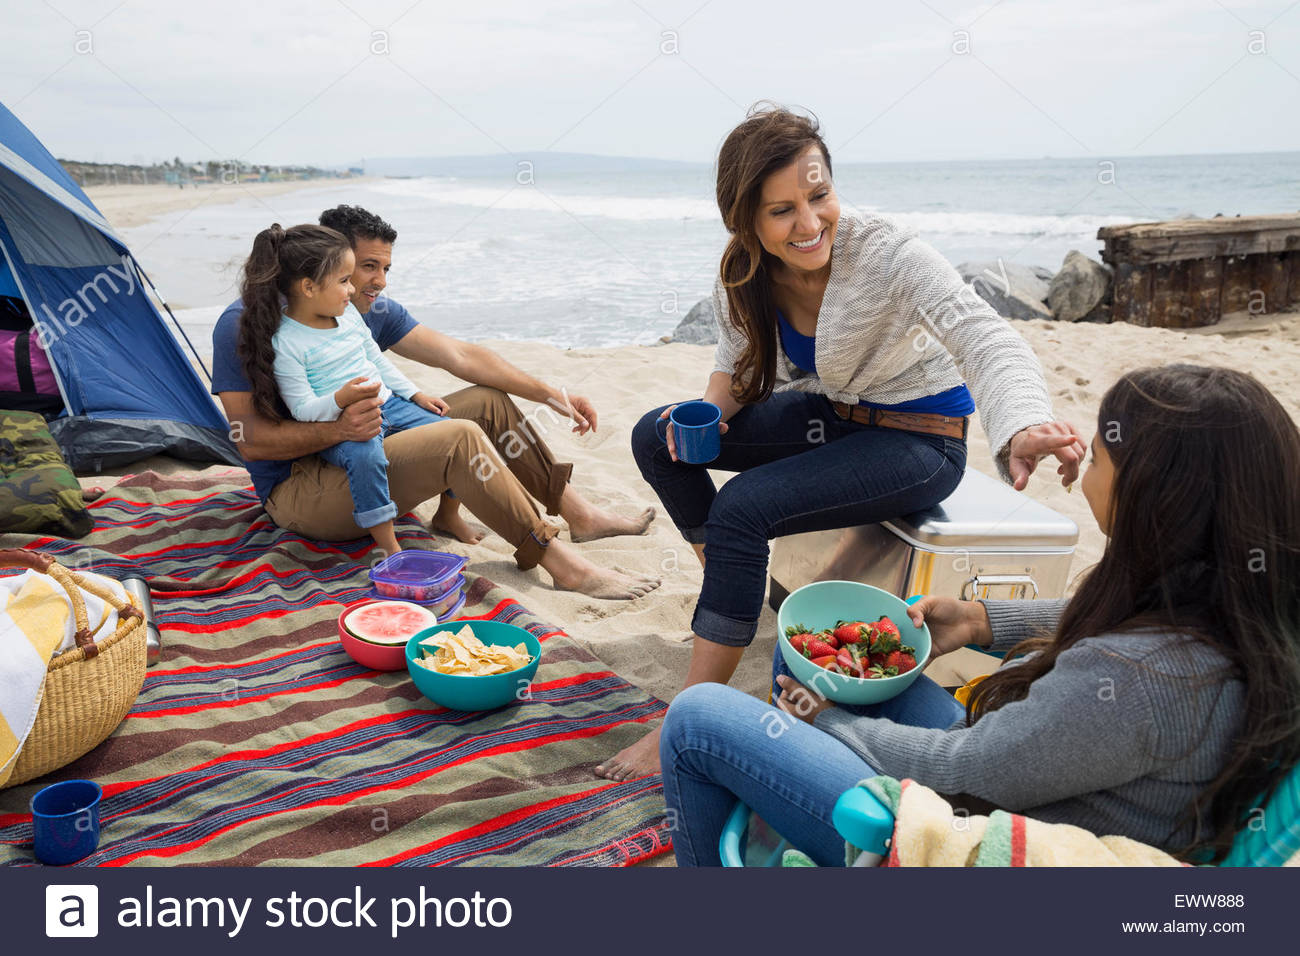 Family picnicking outside tent on beach Stock Photo